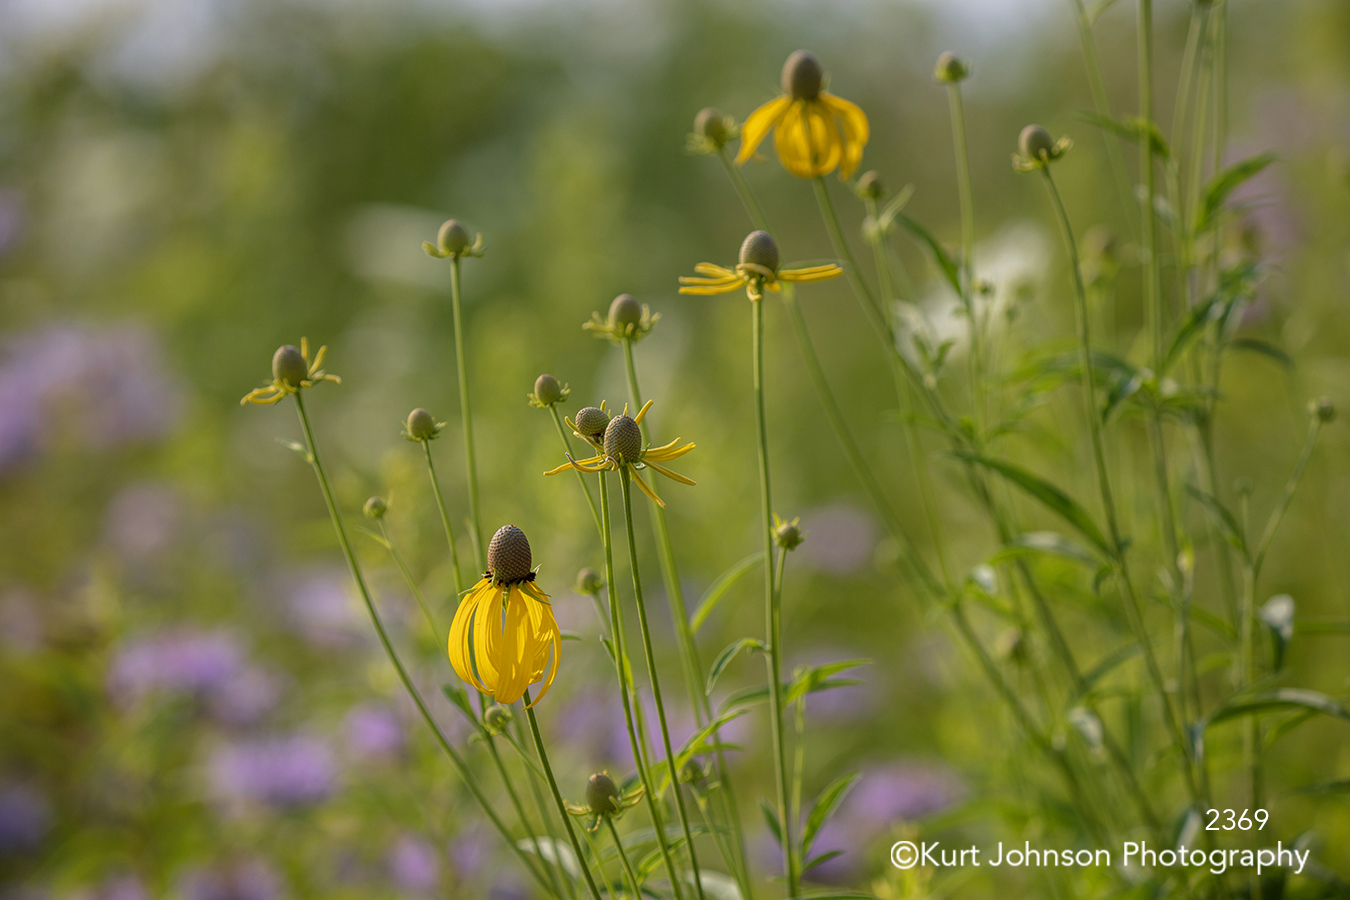 yellow flower flowers wildflower wildflowers field green grass grasses colorful bright happy close up detail